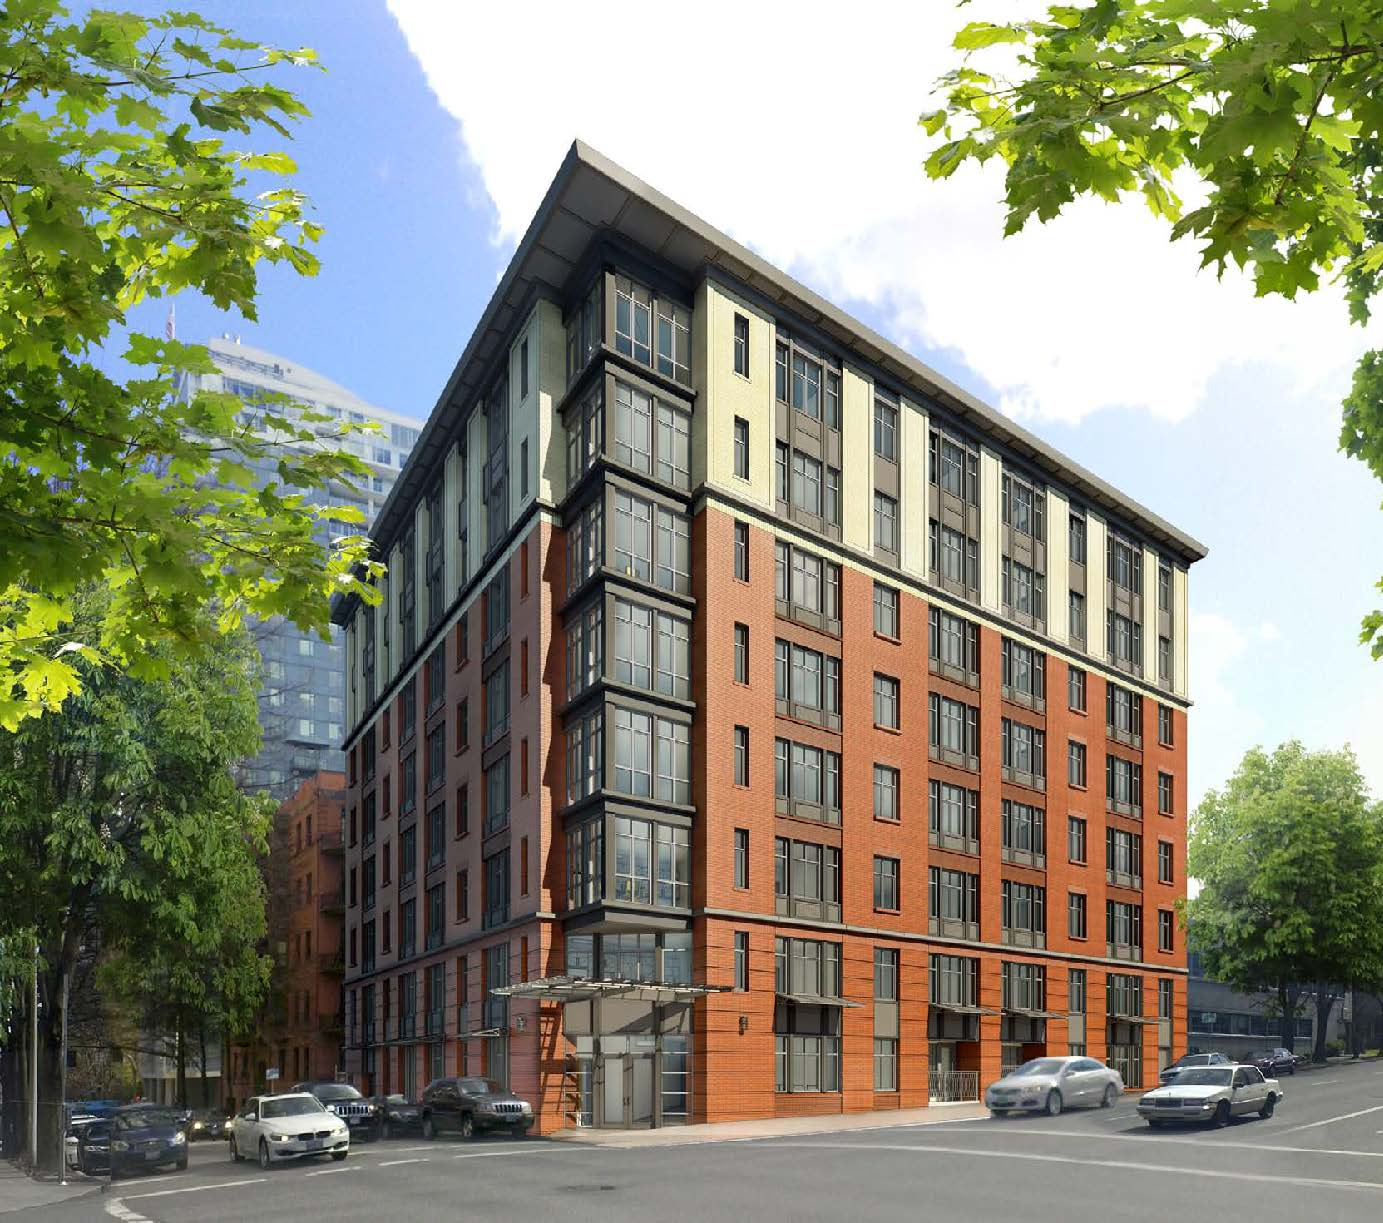 Timber Top Apartments: Under Construction: 12th & Clay Apartments (images)